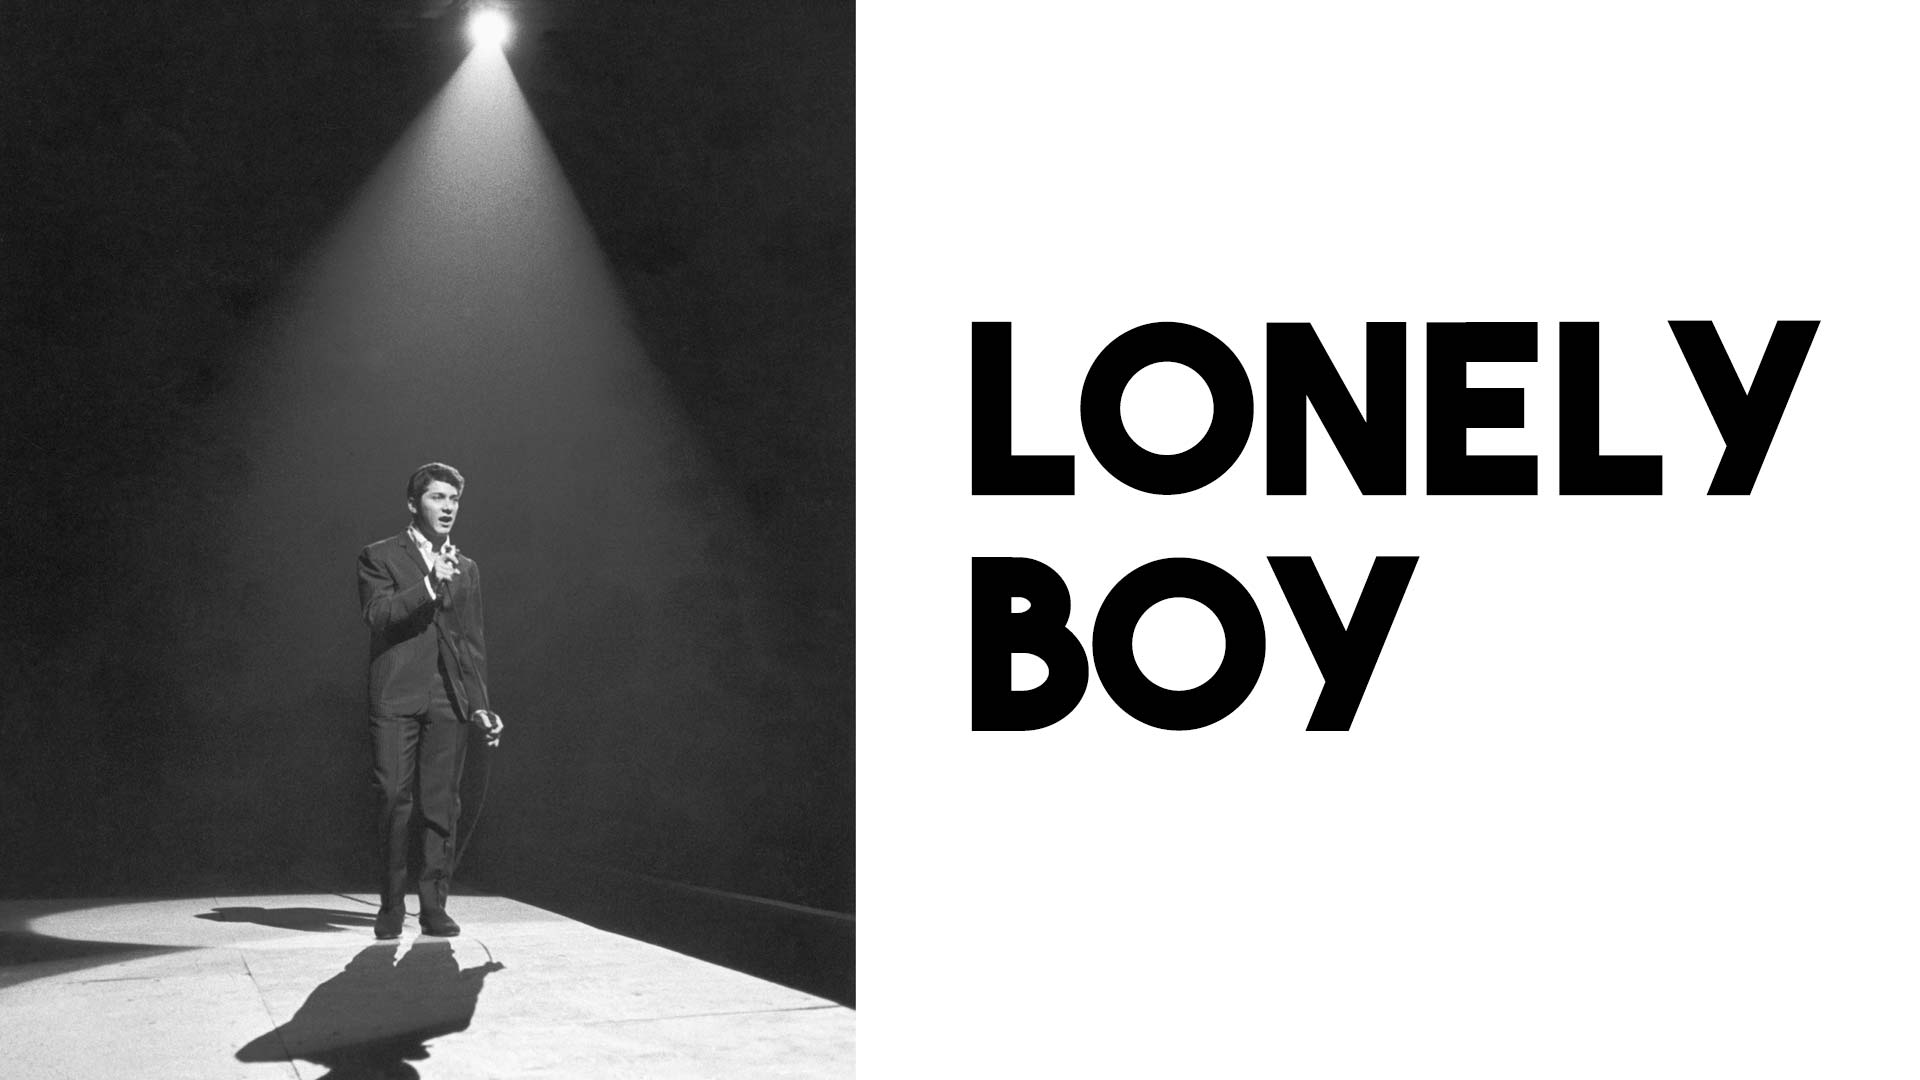 Lonely Boy - image